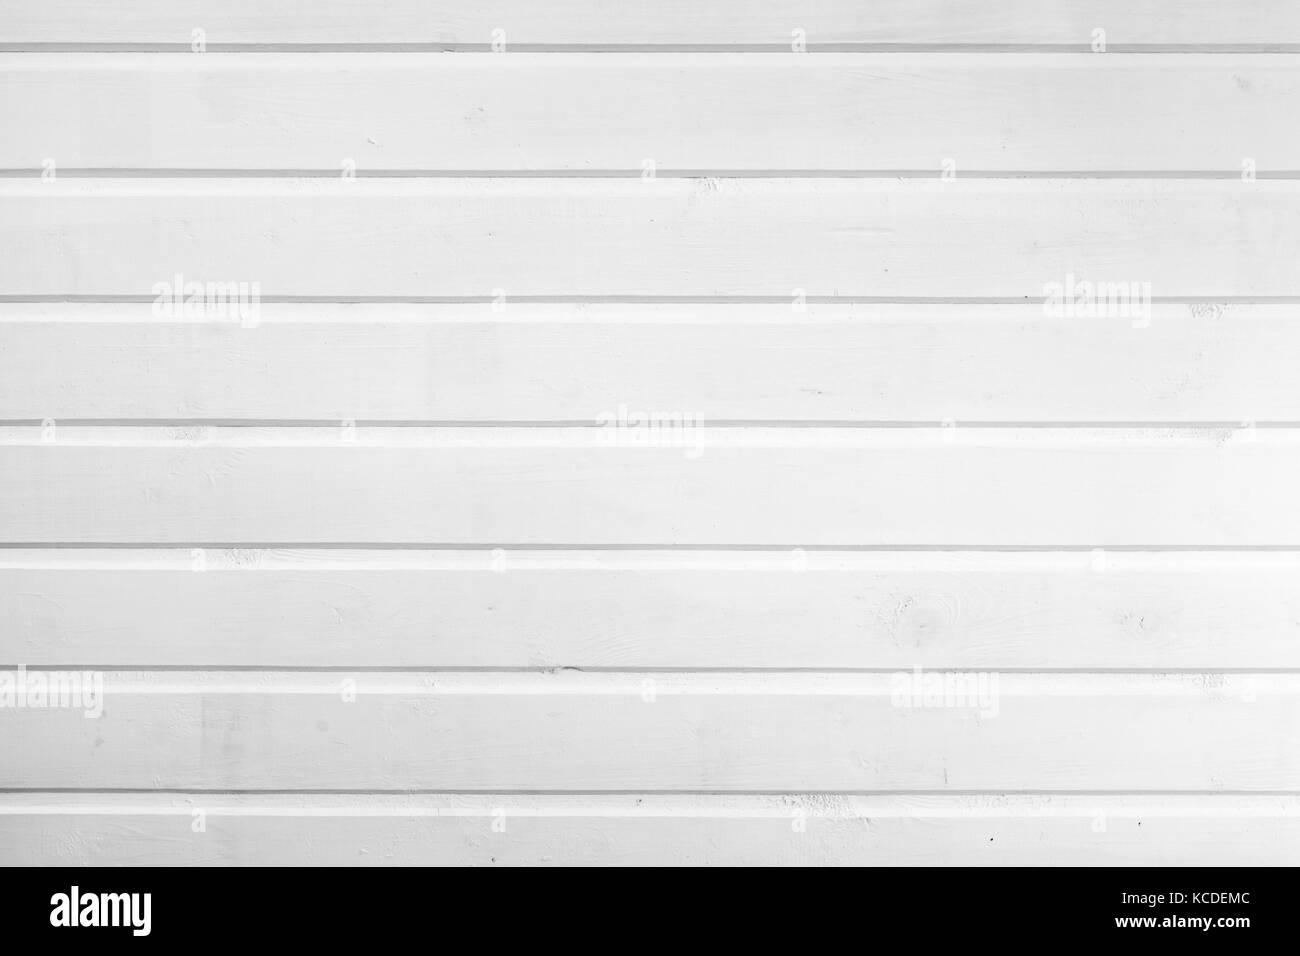 Natural wooden wall made of planks painted in white, flat background photo texture - Stock Image